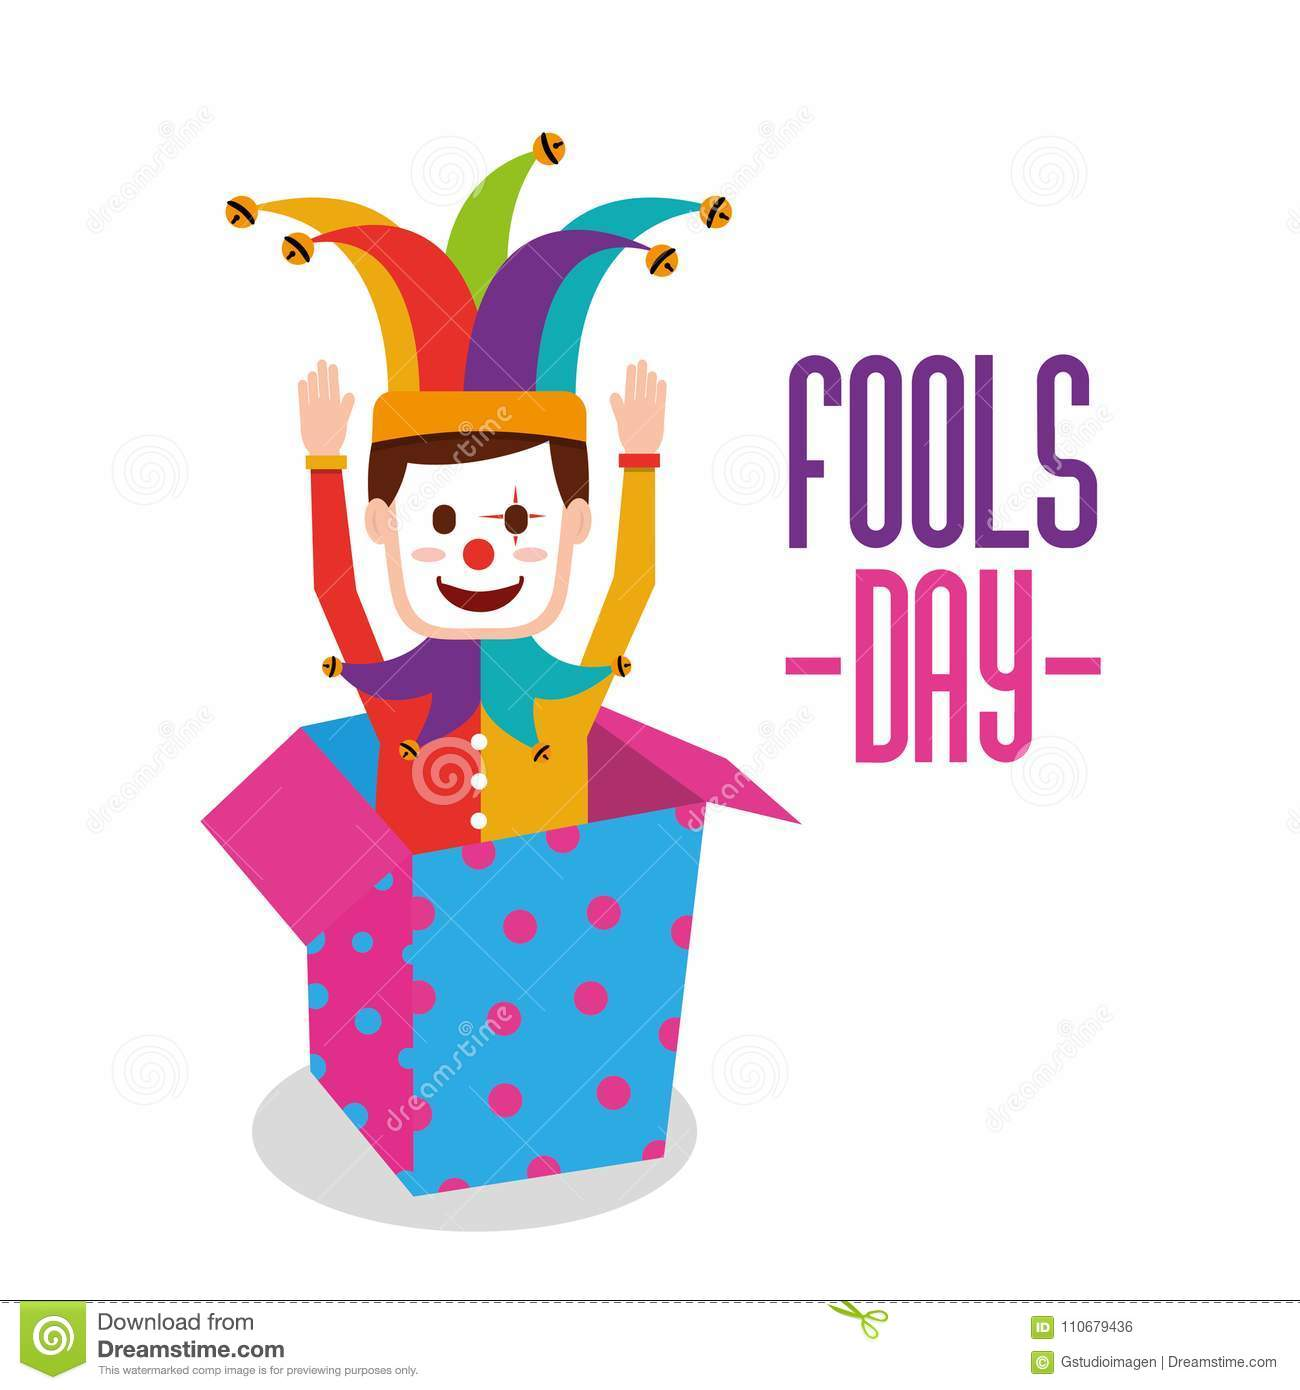 Fools day greeting card stock vector. Illustration of comedian ...